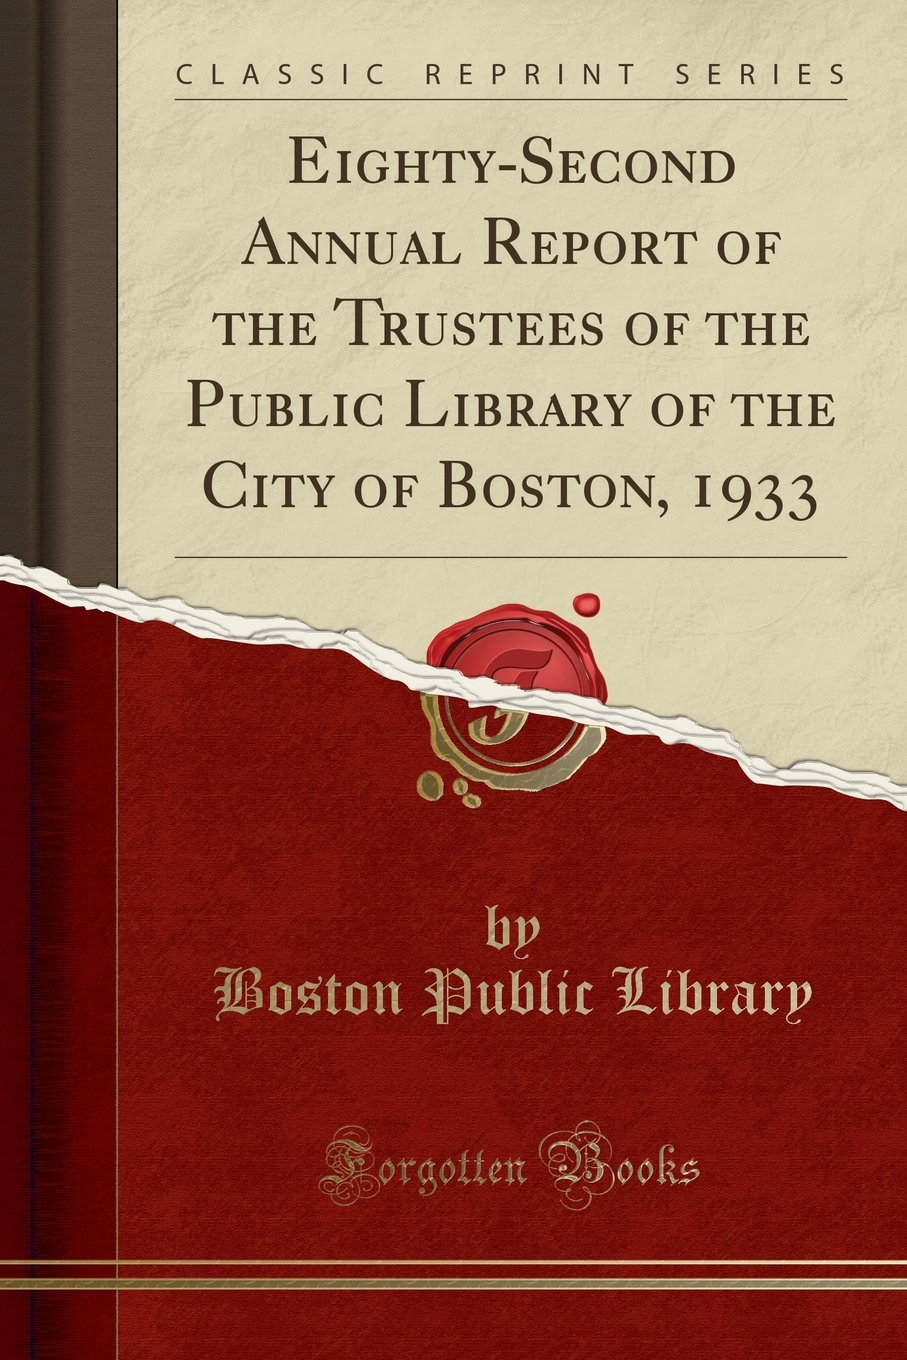 Eighty-Second Annual Report of the Trustees of the Public Library of the City of Boston, 1933 (Classic Reprint) pdf epub